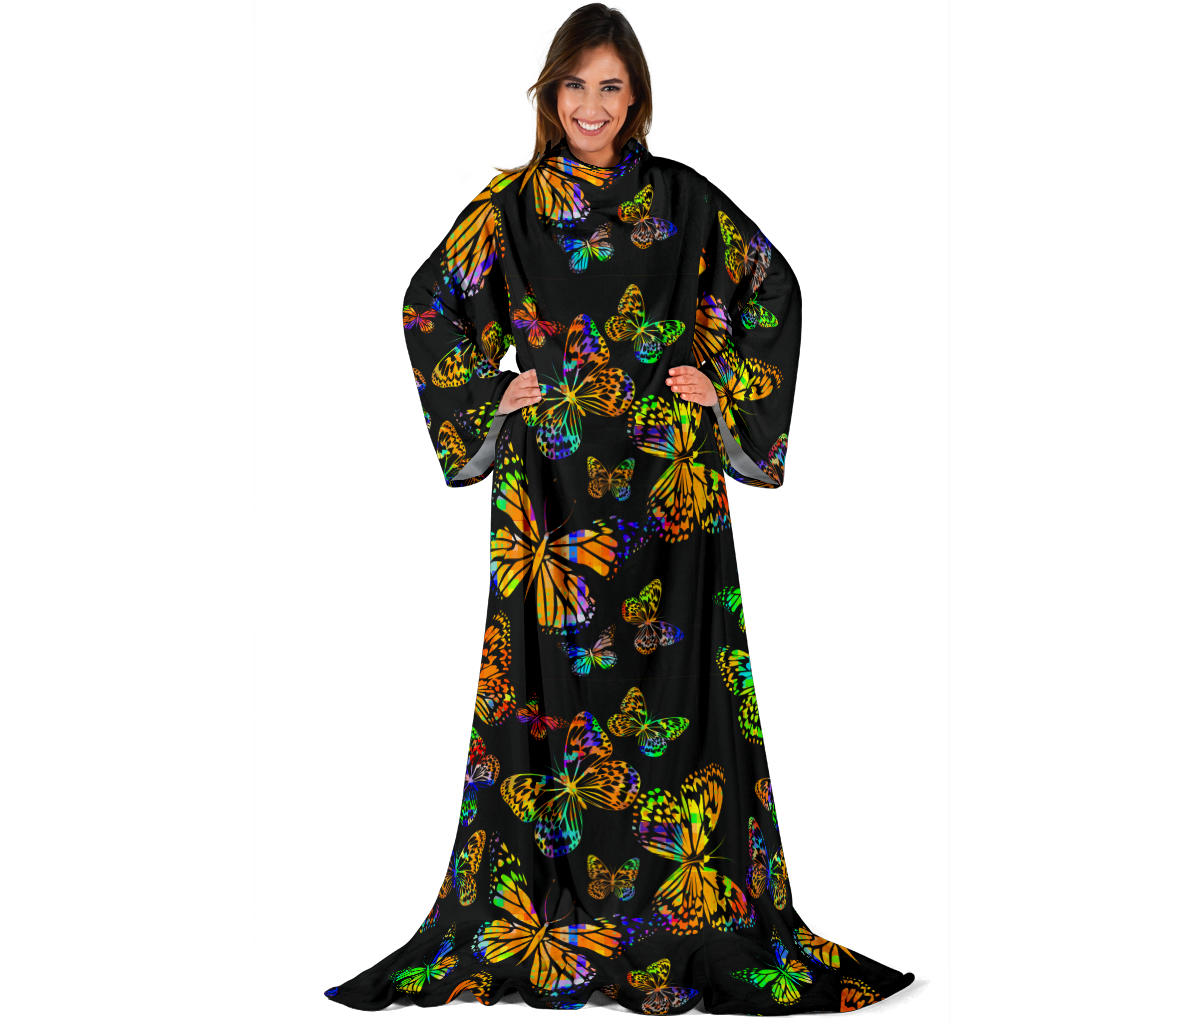 Butterfly Neon Color Print Pattern Adult Sleeve Blanket